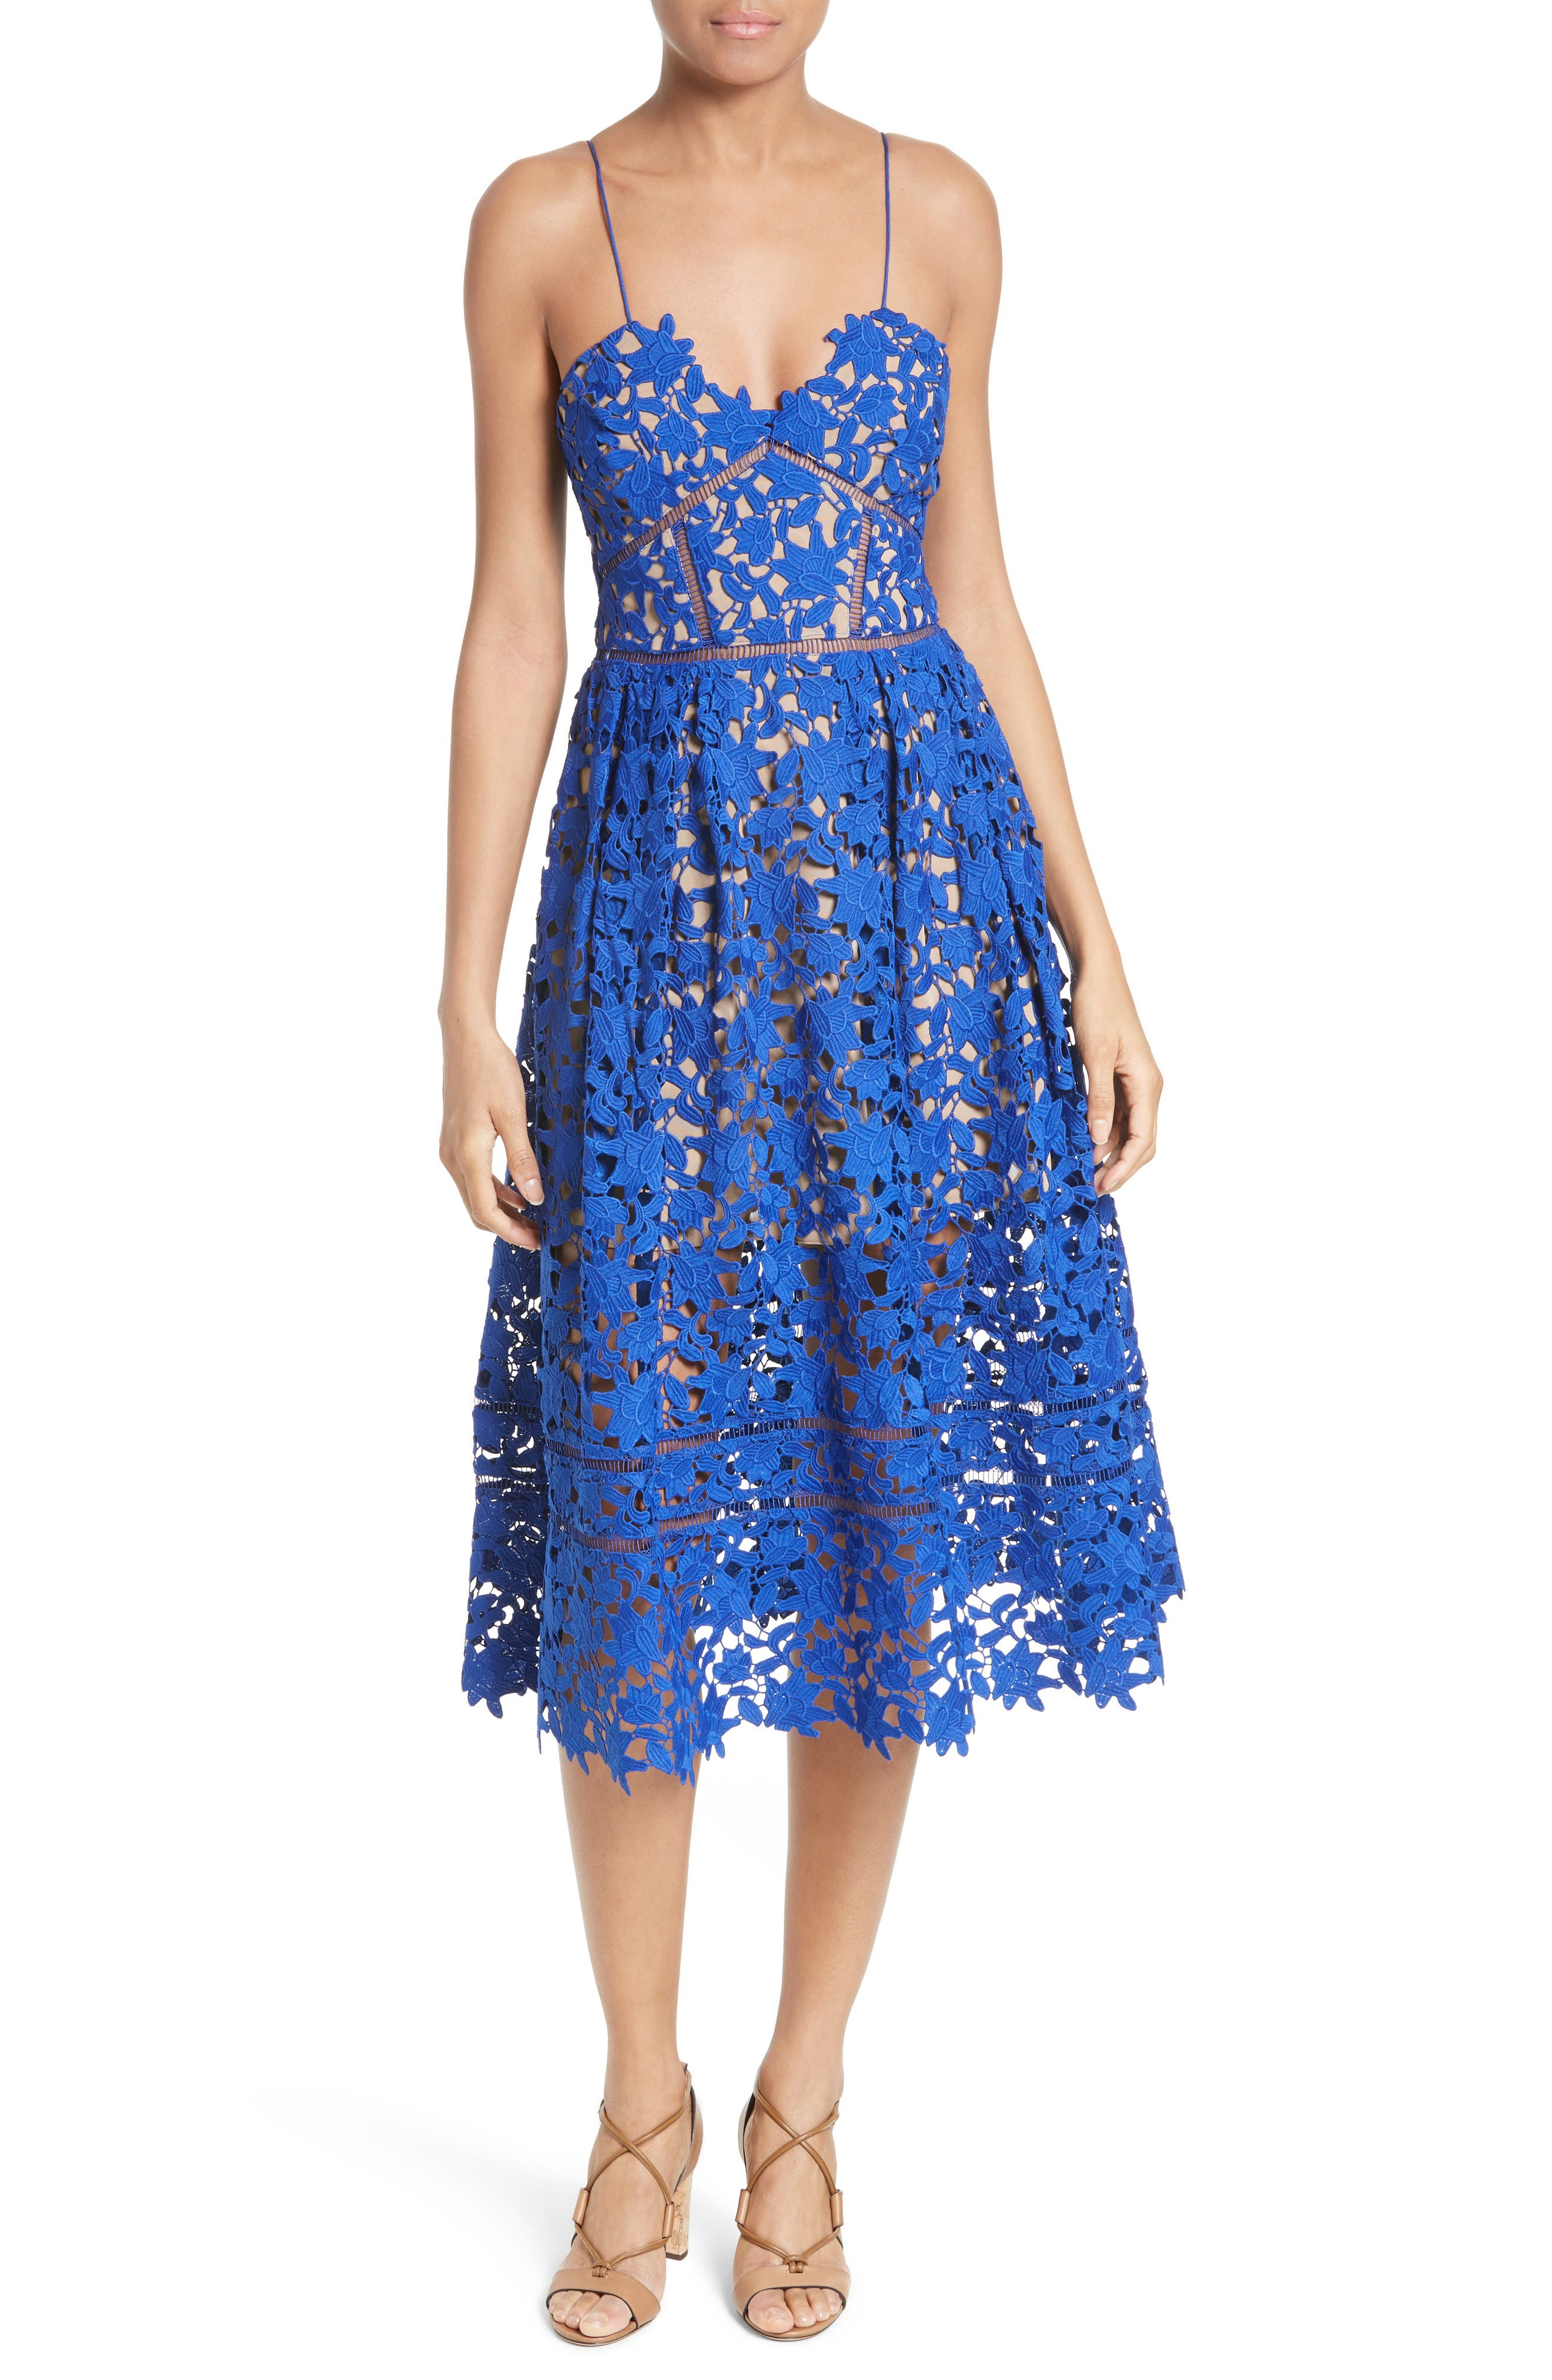 Self-Portrait 'Azaelea' Lace Fit & Flare Dress